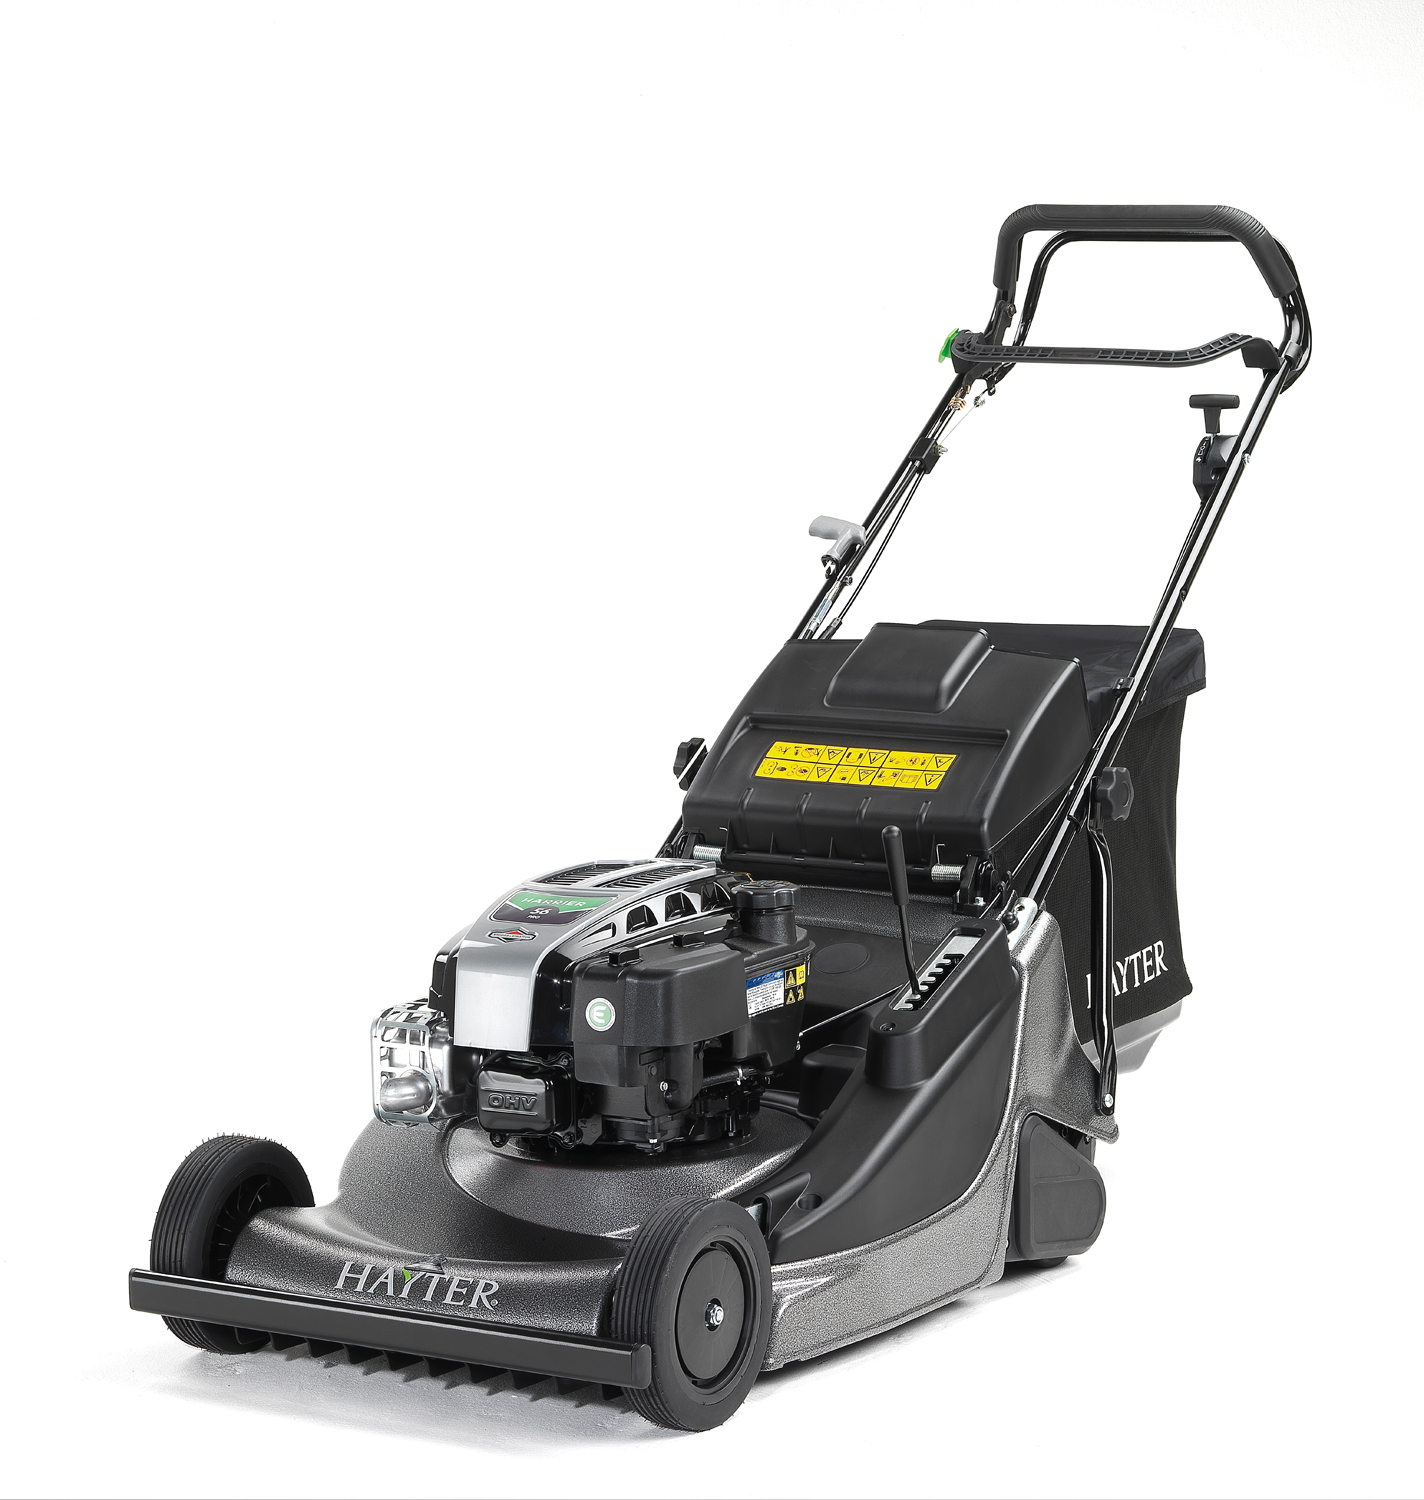 HAYTER Harrier 56 PRO 579A Petrol Lawnmower